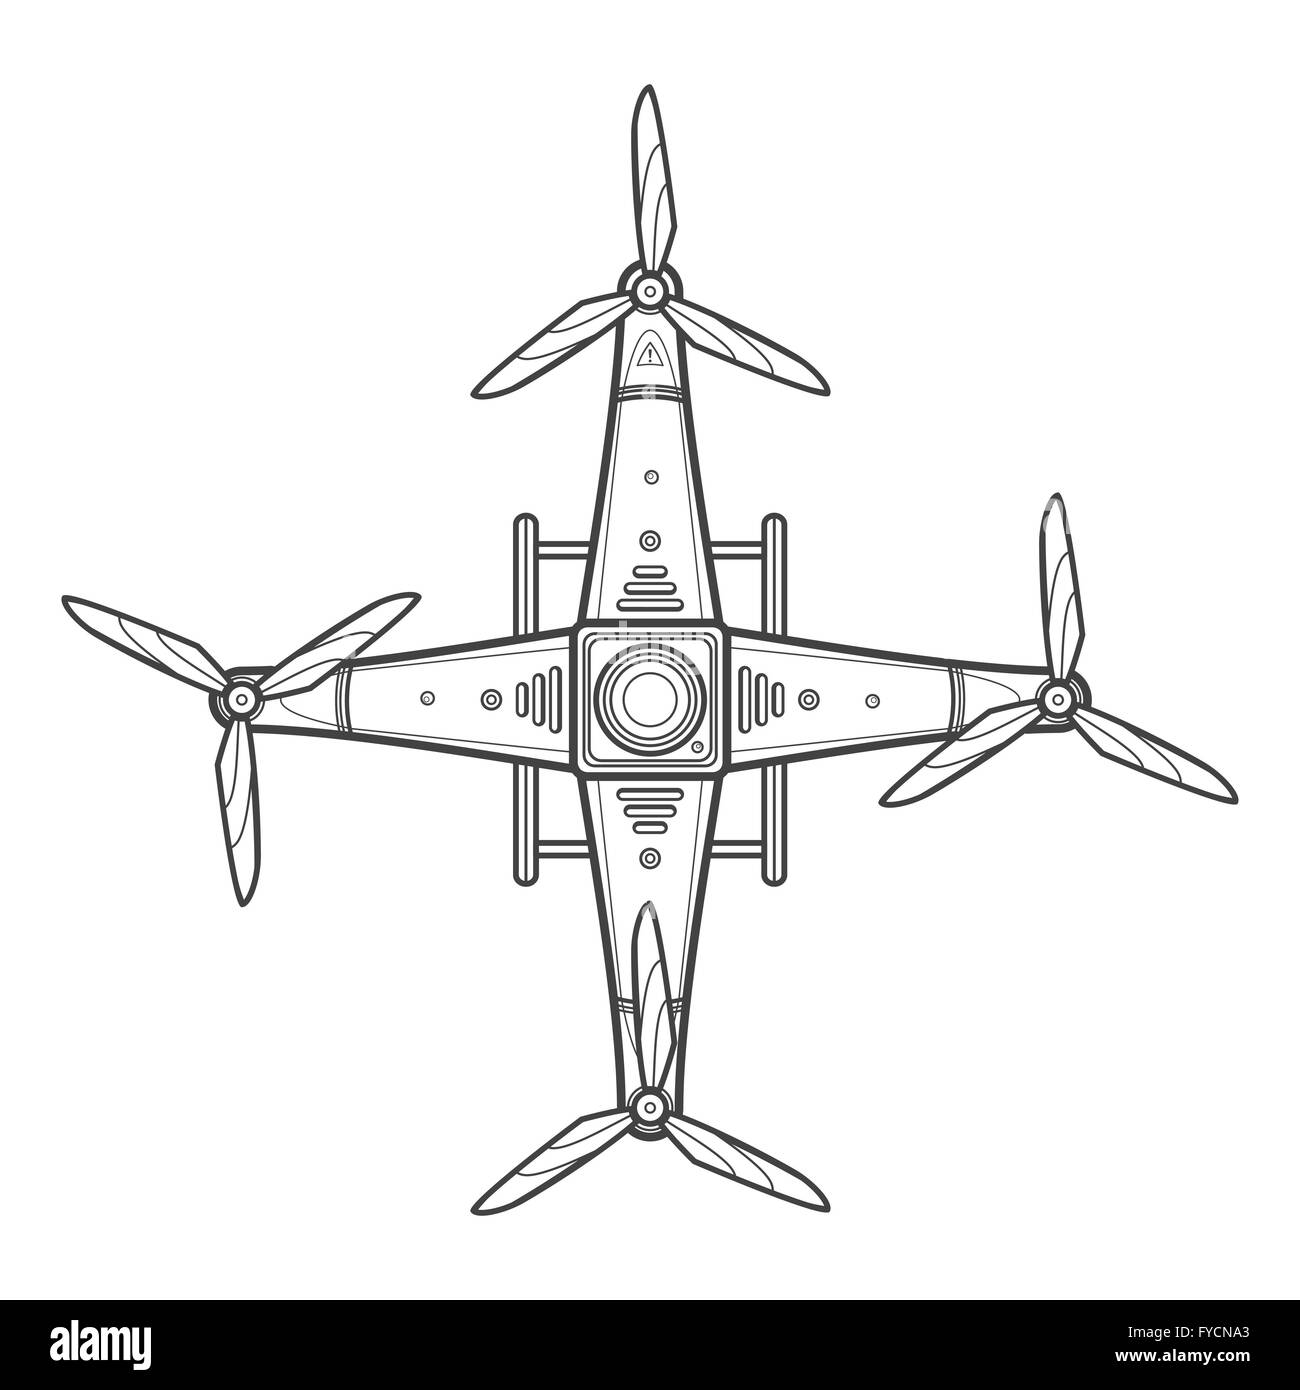 Vector Dark Contour Design Quadcopter Drone Three Blades Propellers Top View Isolated Illustration White Background